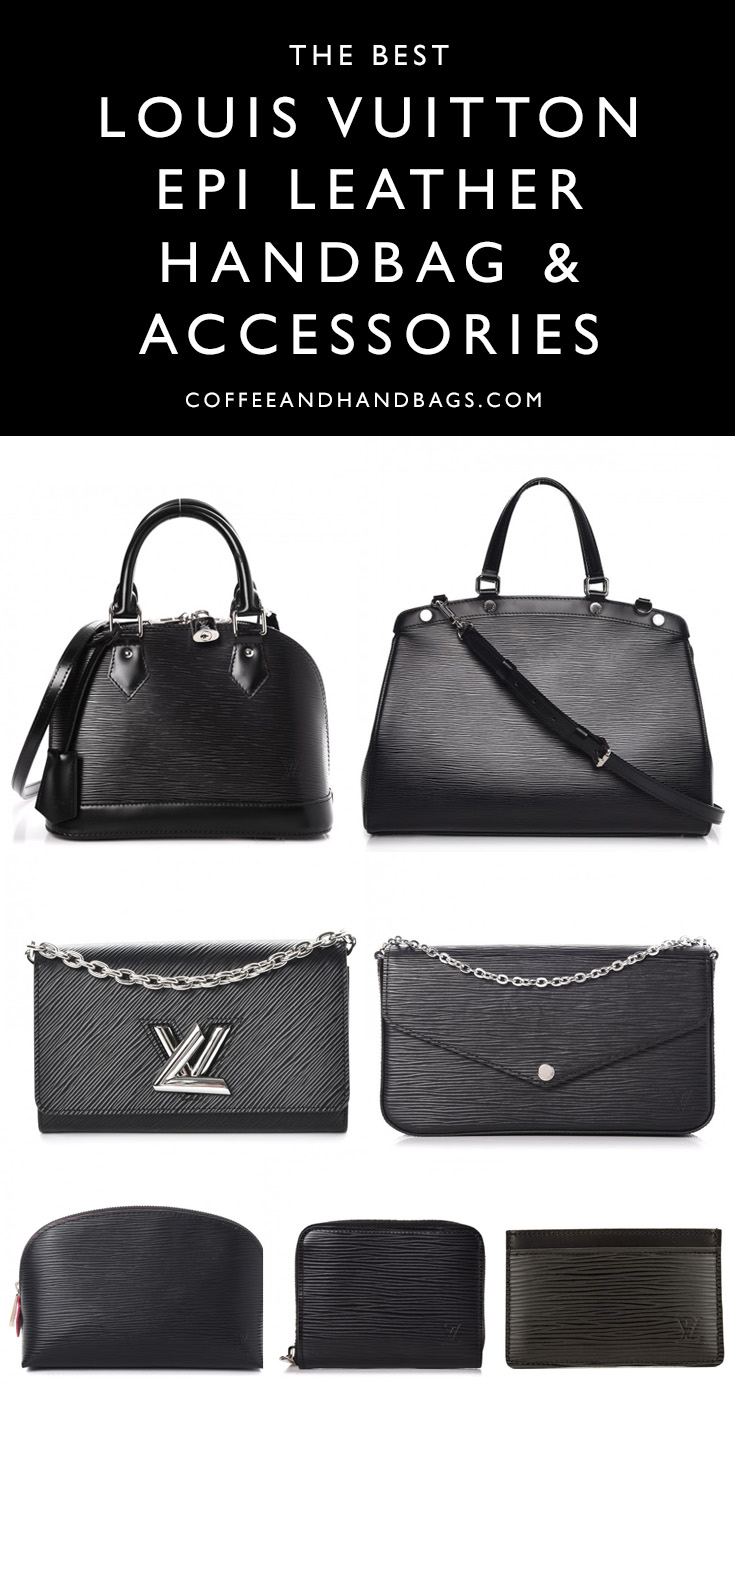 The Best Louis Vuitton Epi Leather Handbags, SLGs, and Accessories | CoffeeAndHandbags.com